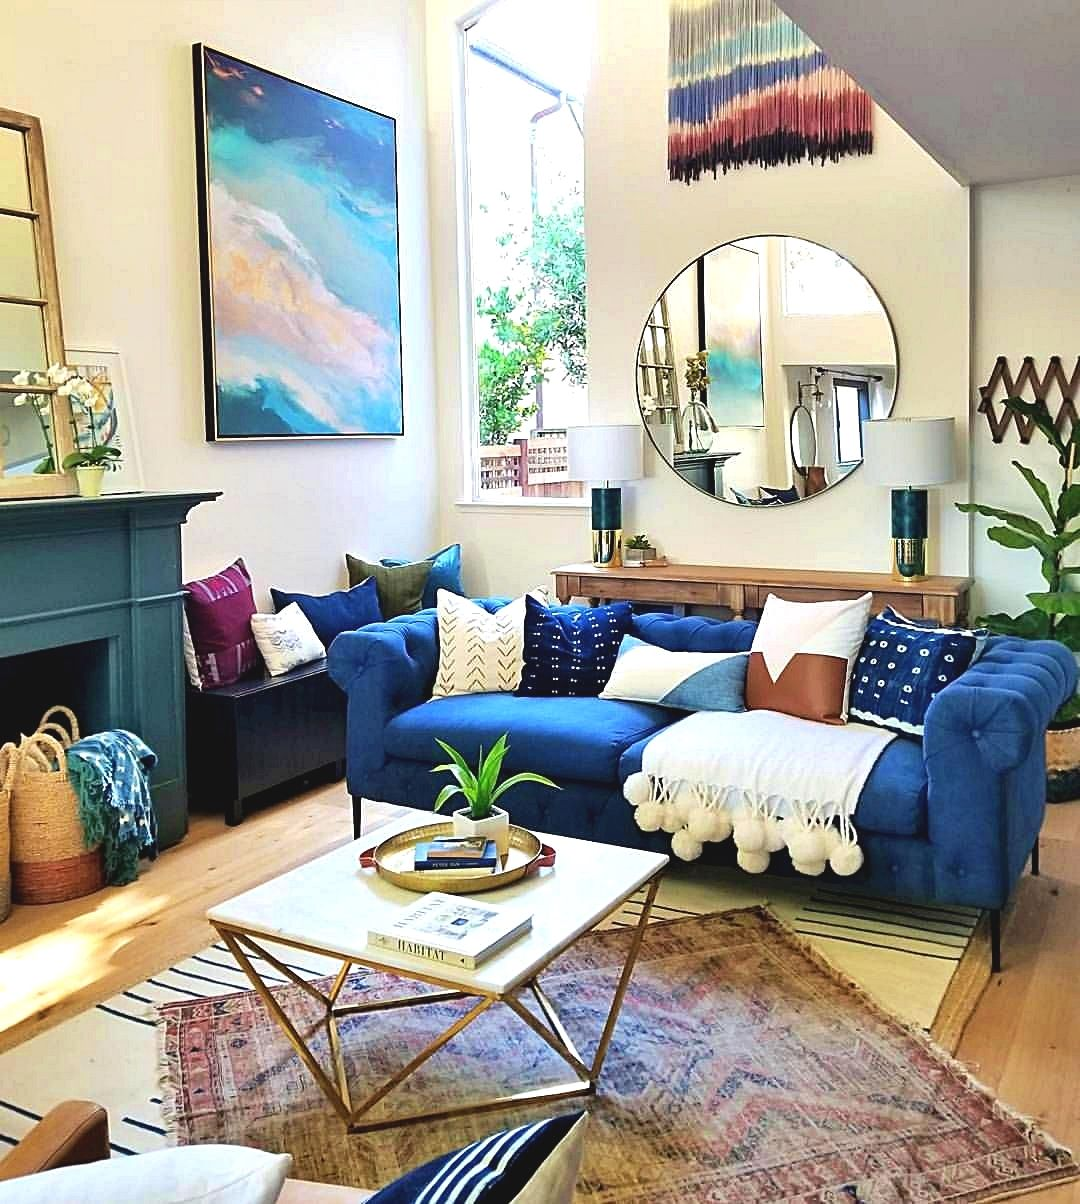 Living Room Decor And Design Ideas Top Style Decor Living Room Decor Smart Living Room Havenly Living Room Redo my living room